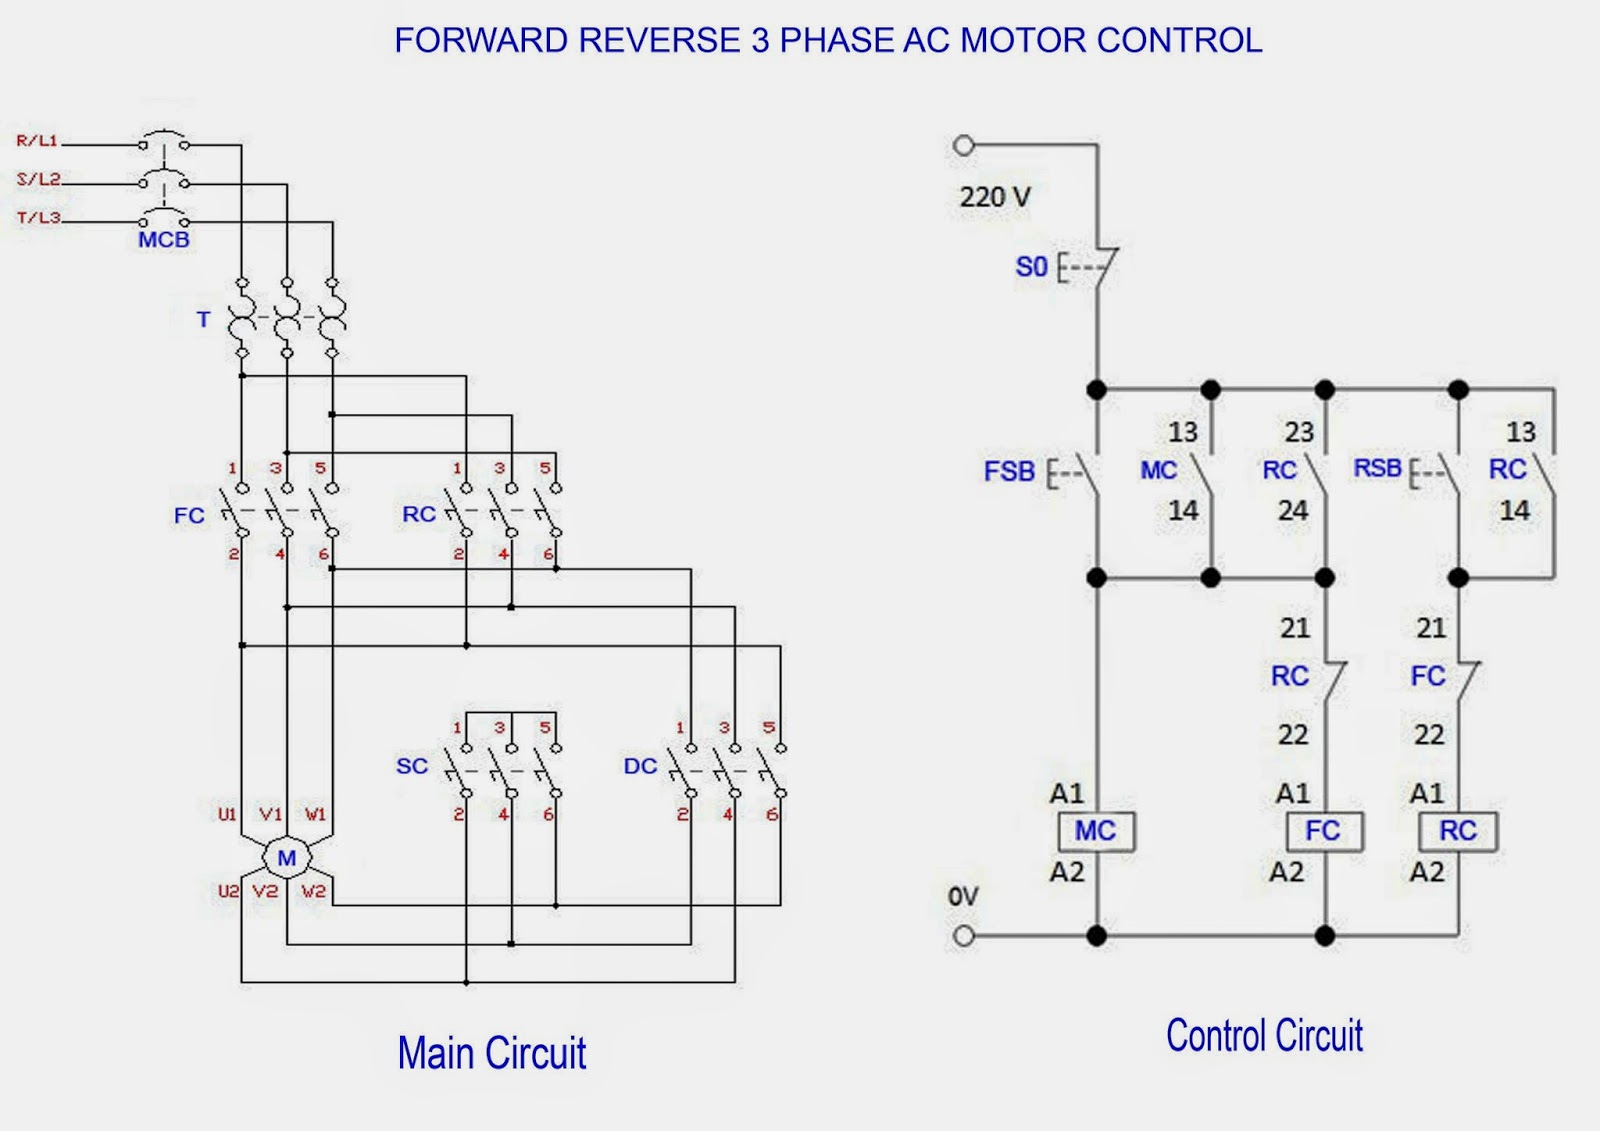 forward reverse phase ac motor control wiring diagram forward reverse star delta wiring diagram